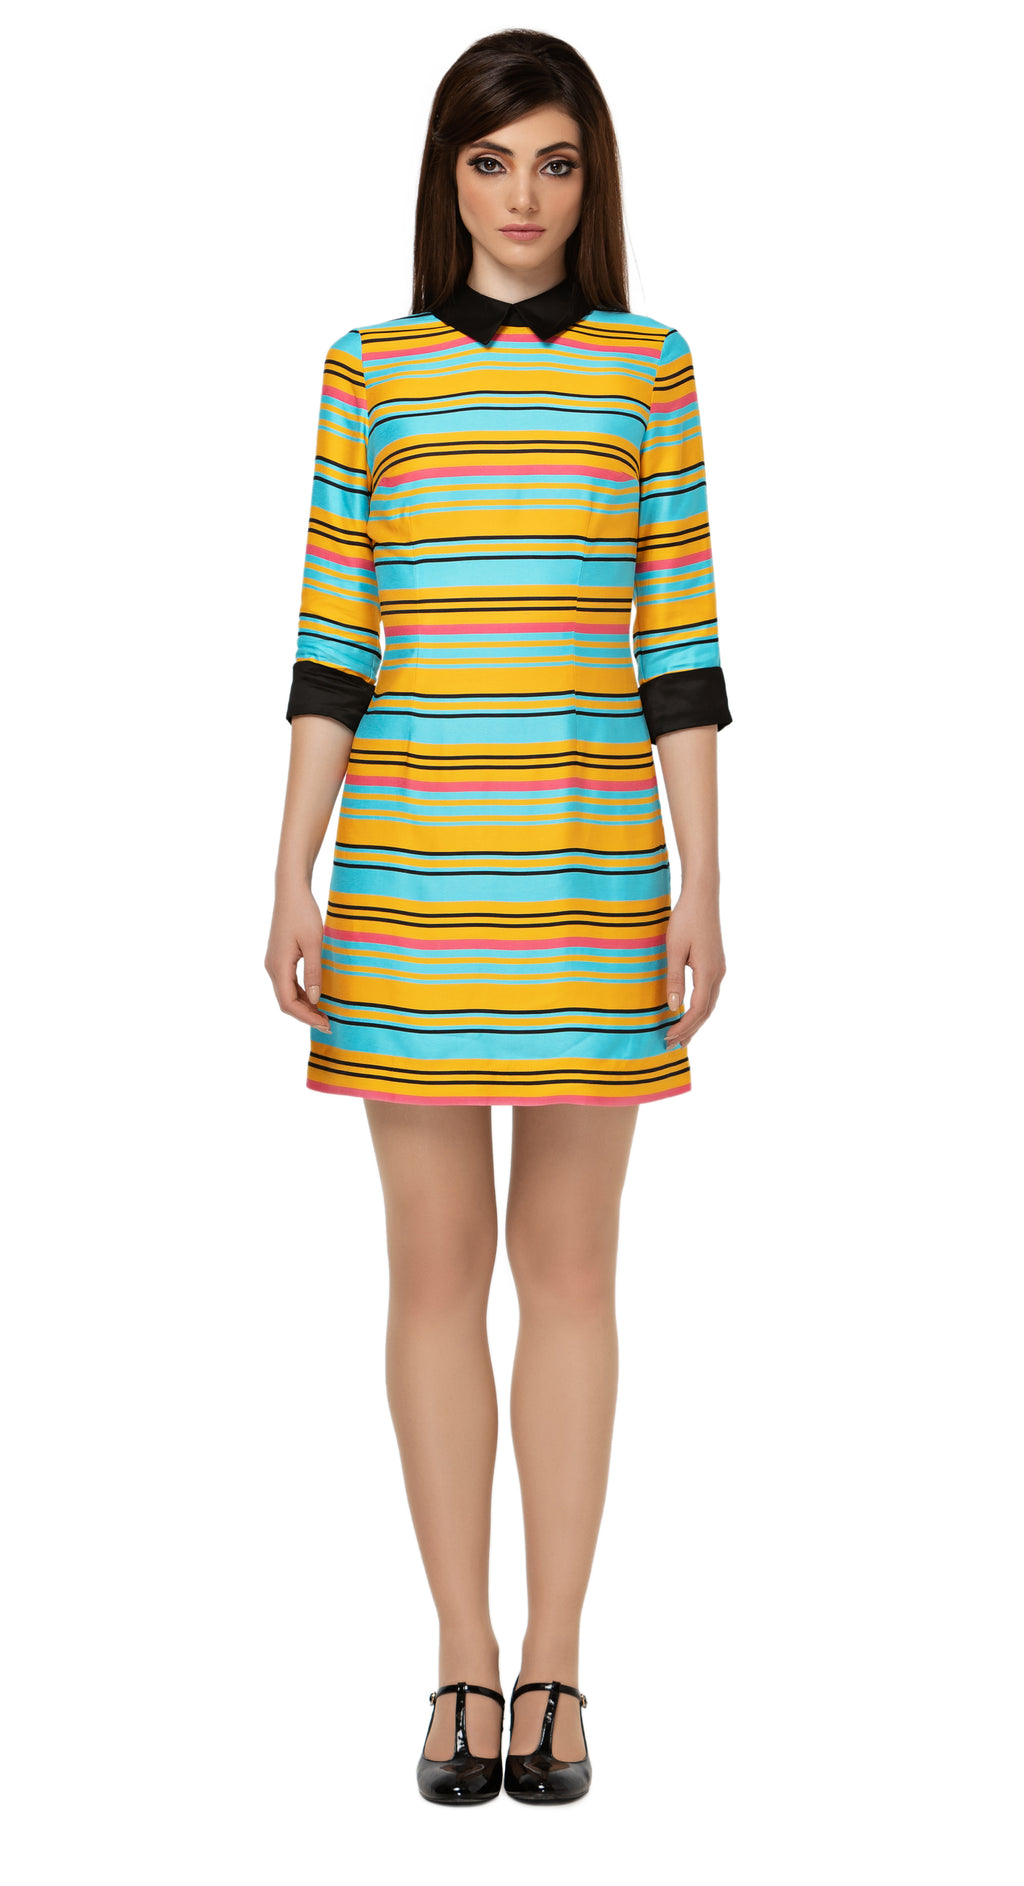 Colourful striped Spring three quarter length sleeved dress. Premium quality Italian breathable viscose-blend. Classic shirt collar with black trim cuffs.  Choose bespoke to change sleeve lengths from short to full and/or to alter hem length.  Pairs well with our jacket MSMSSP2021-20.